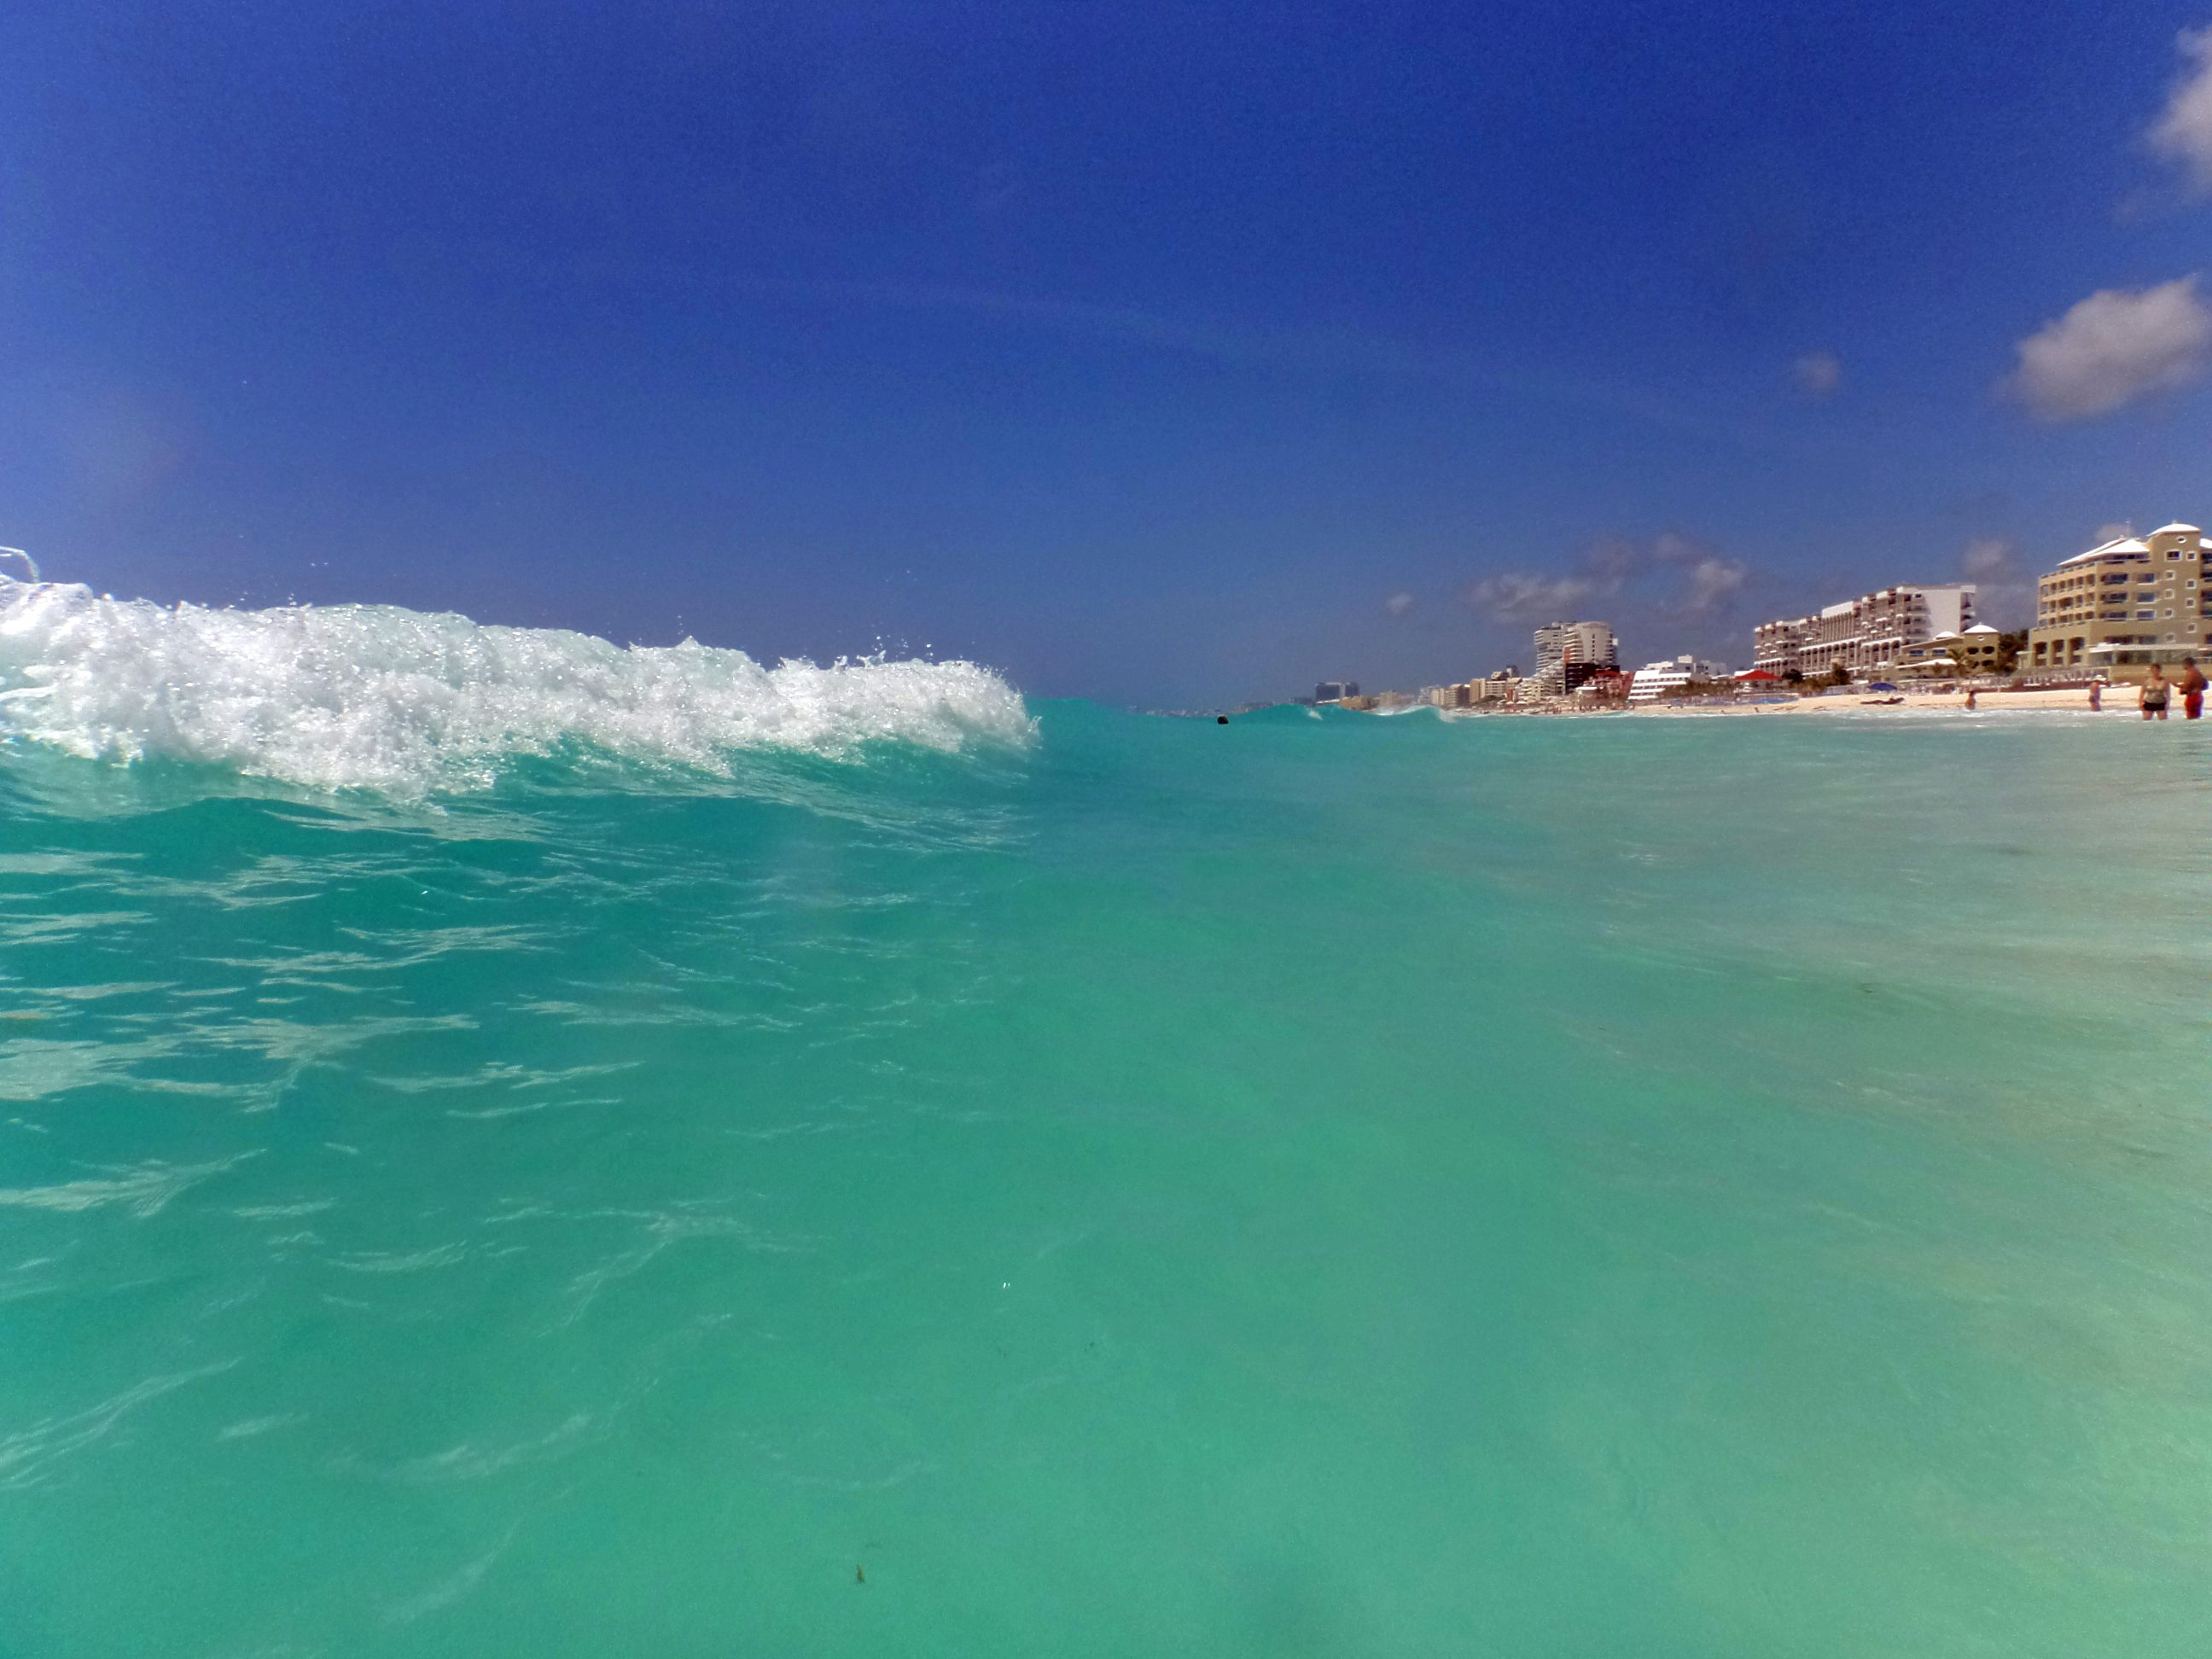 cancun_mexico_chacmool